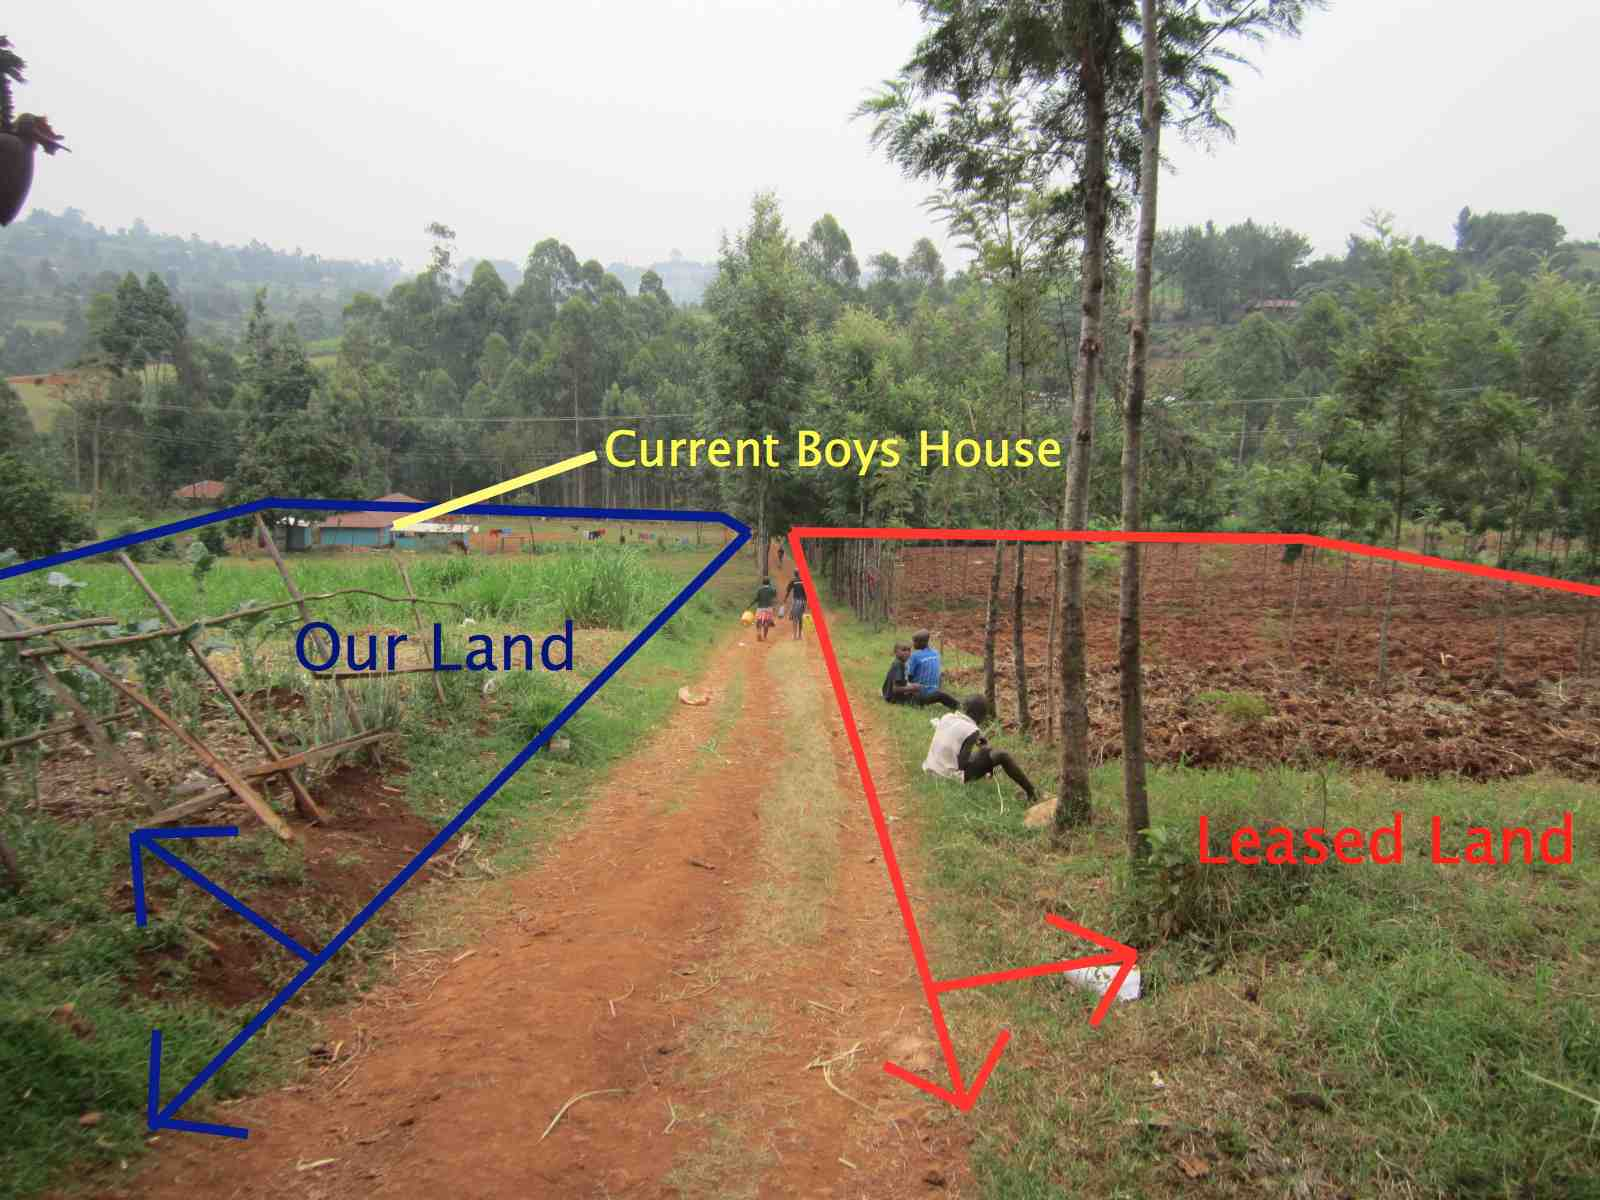 What this photo does NOT show is the main house, girls house, goats/rabbits house, dogs house, grazing area for cows, and many other aspects of the KRCH. In fact, this photo only shows 65% of our land.